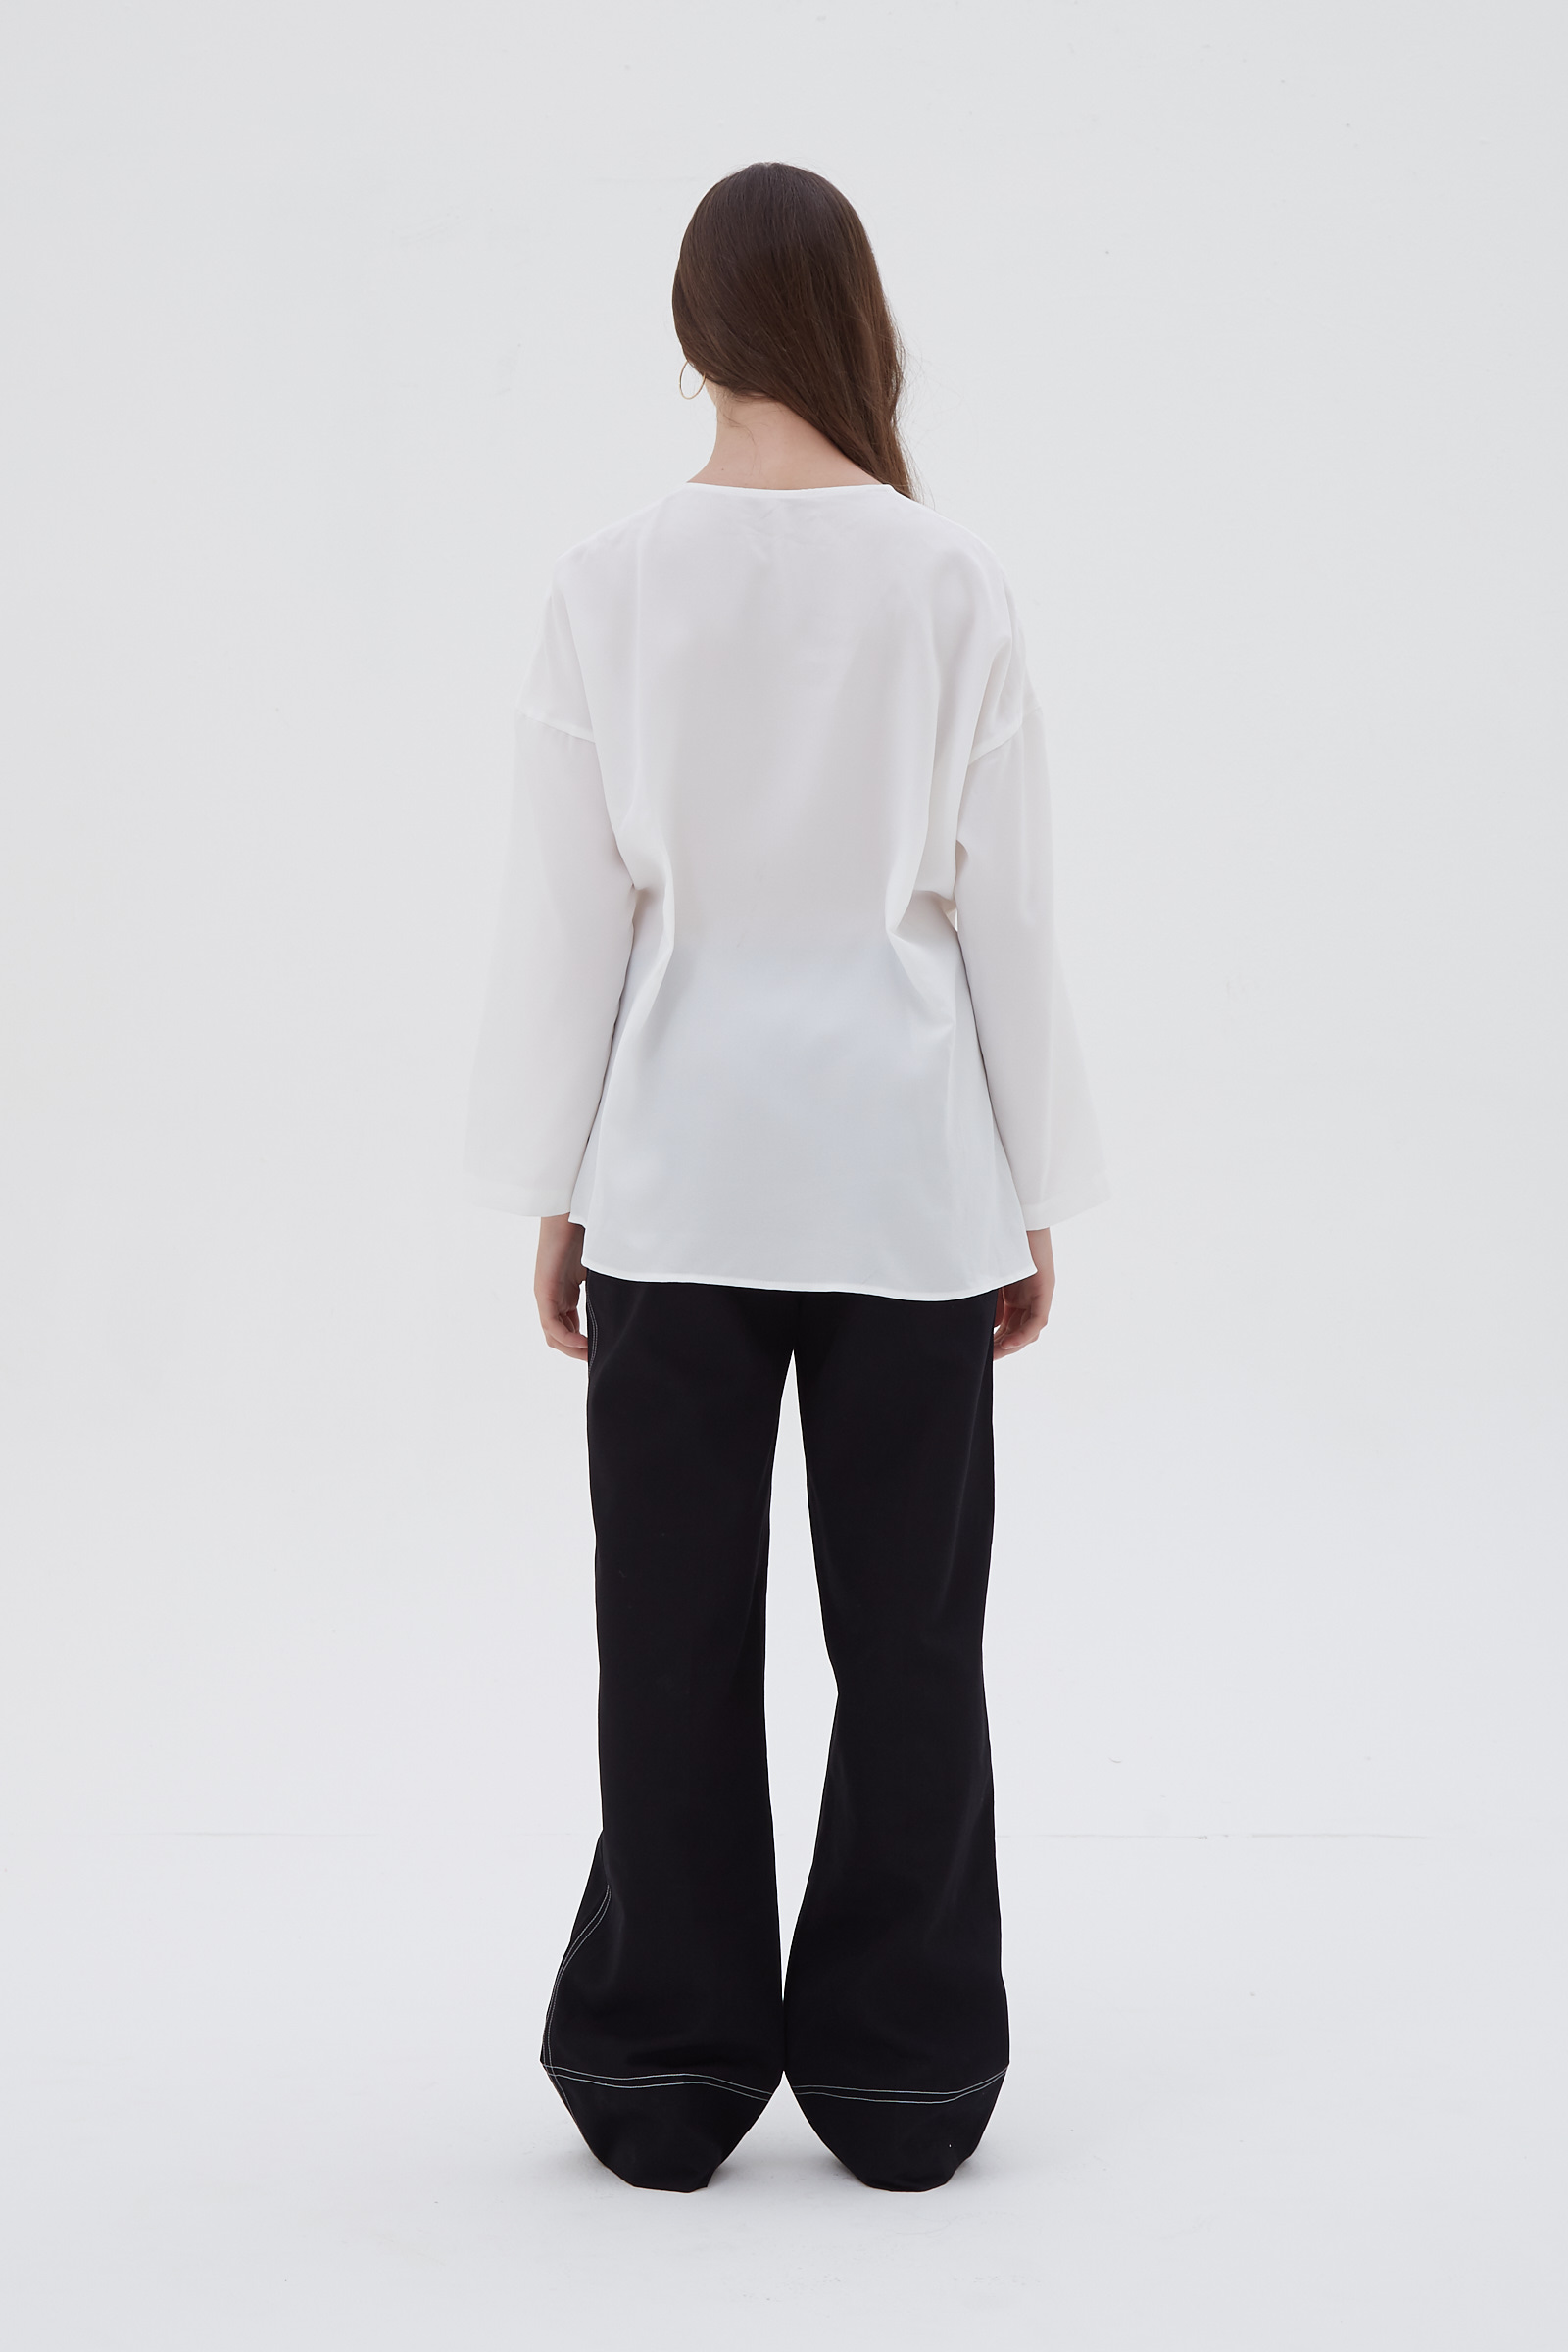 Shopatvelvet Rhapsody blouse white